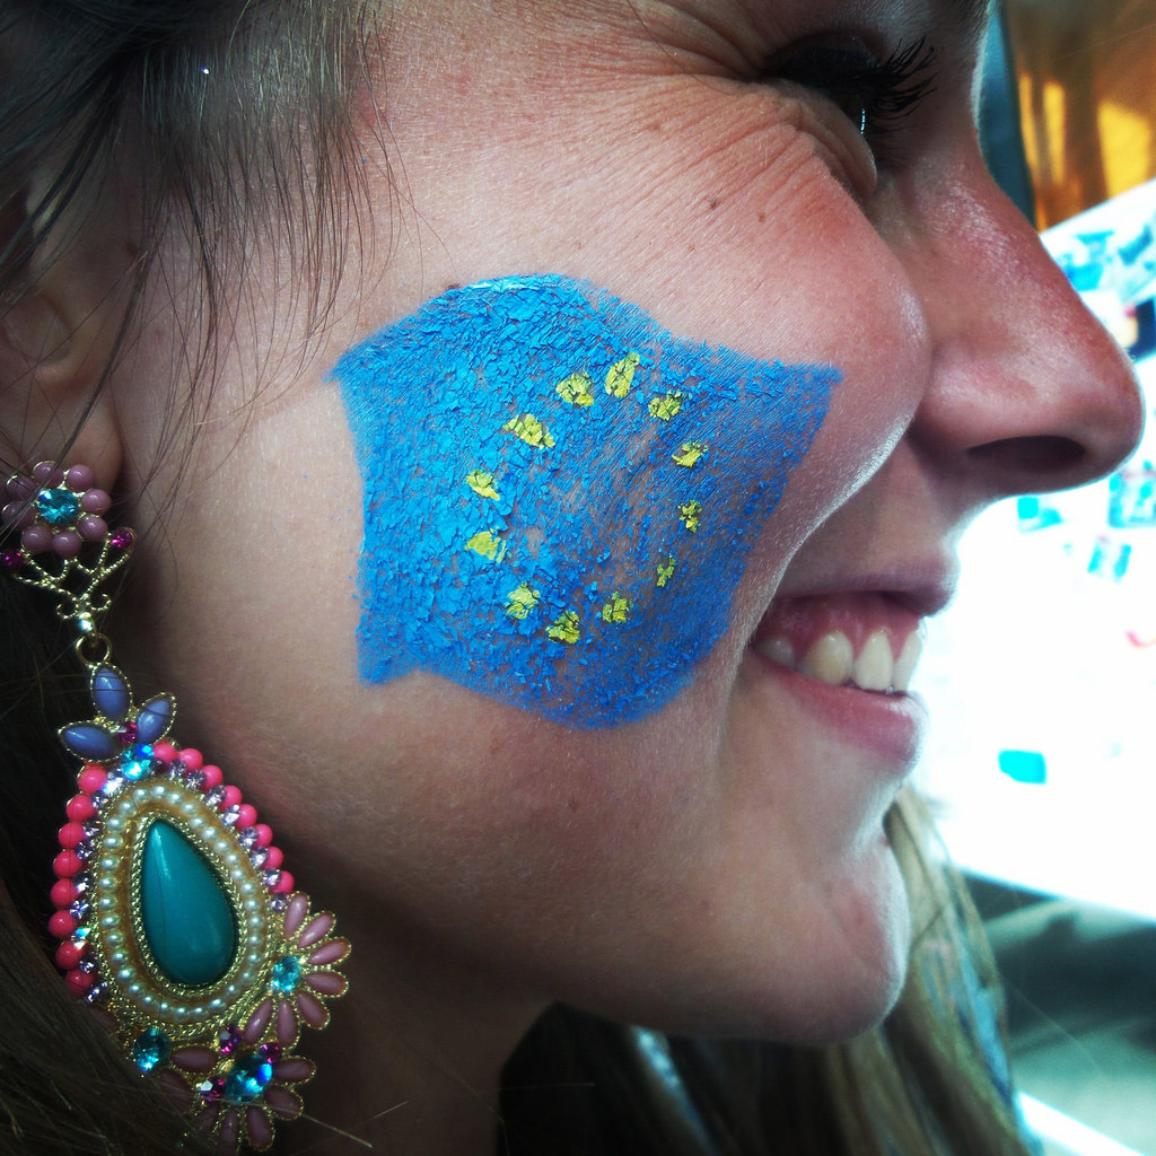 A young girl with the EU flag painted on her cheek at the EYE event in Strasbourg